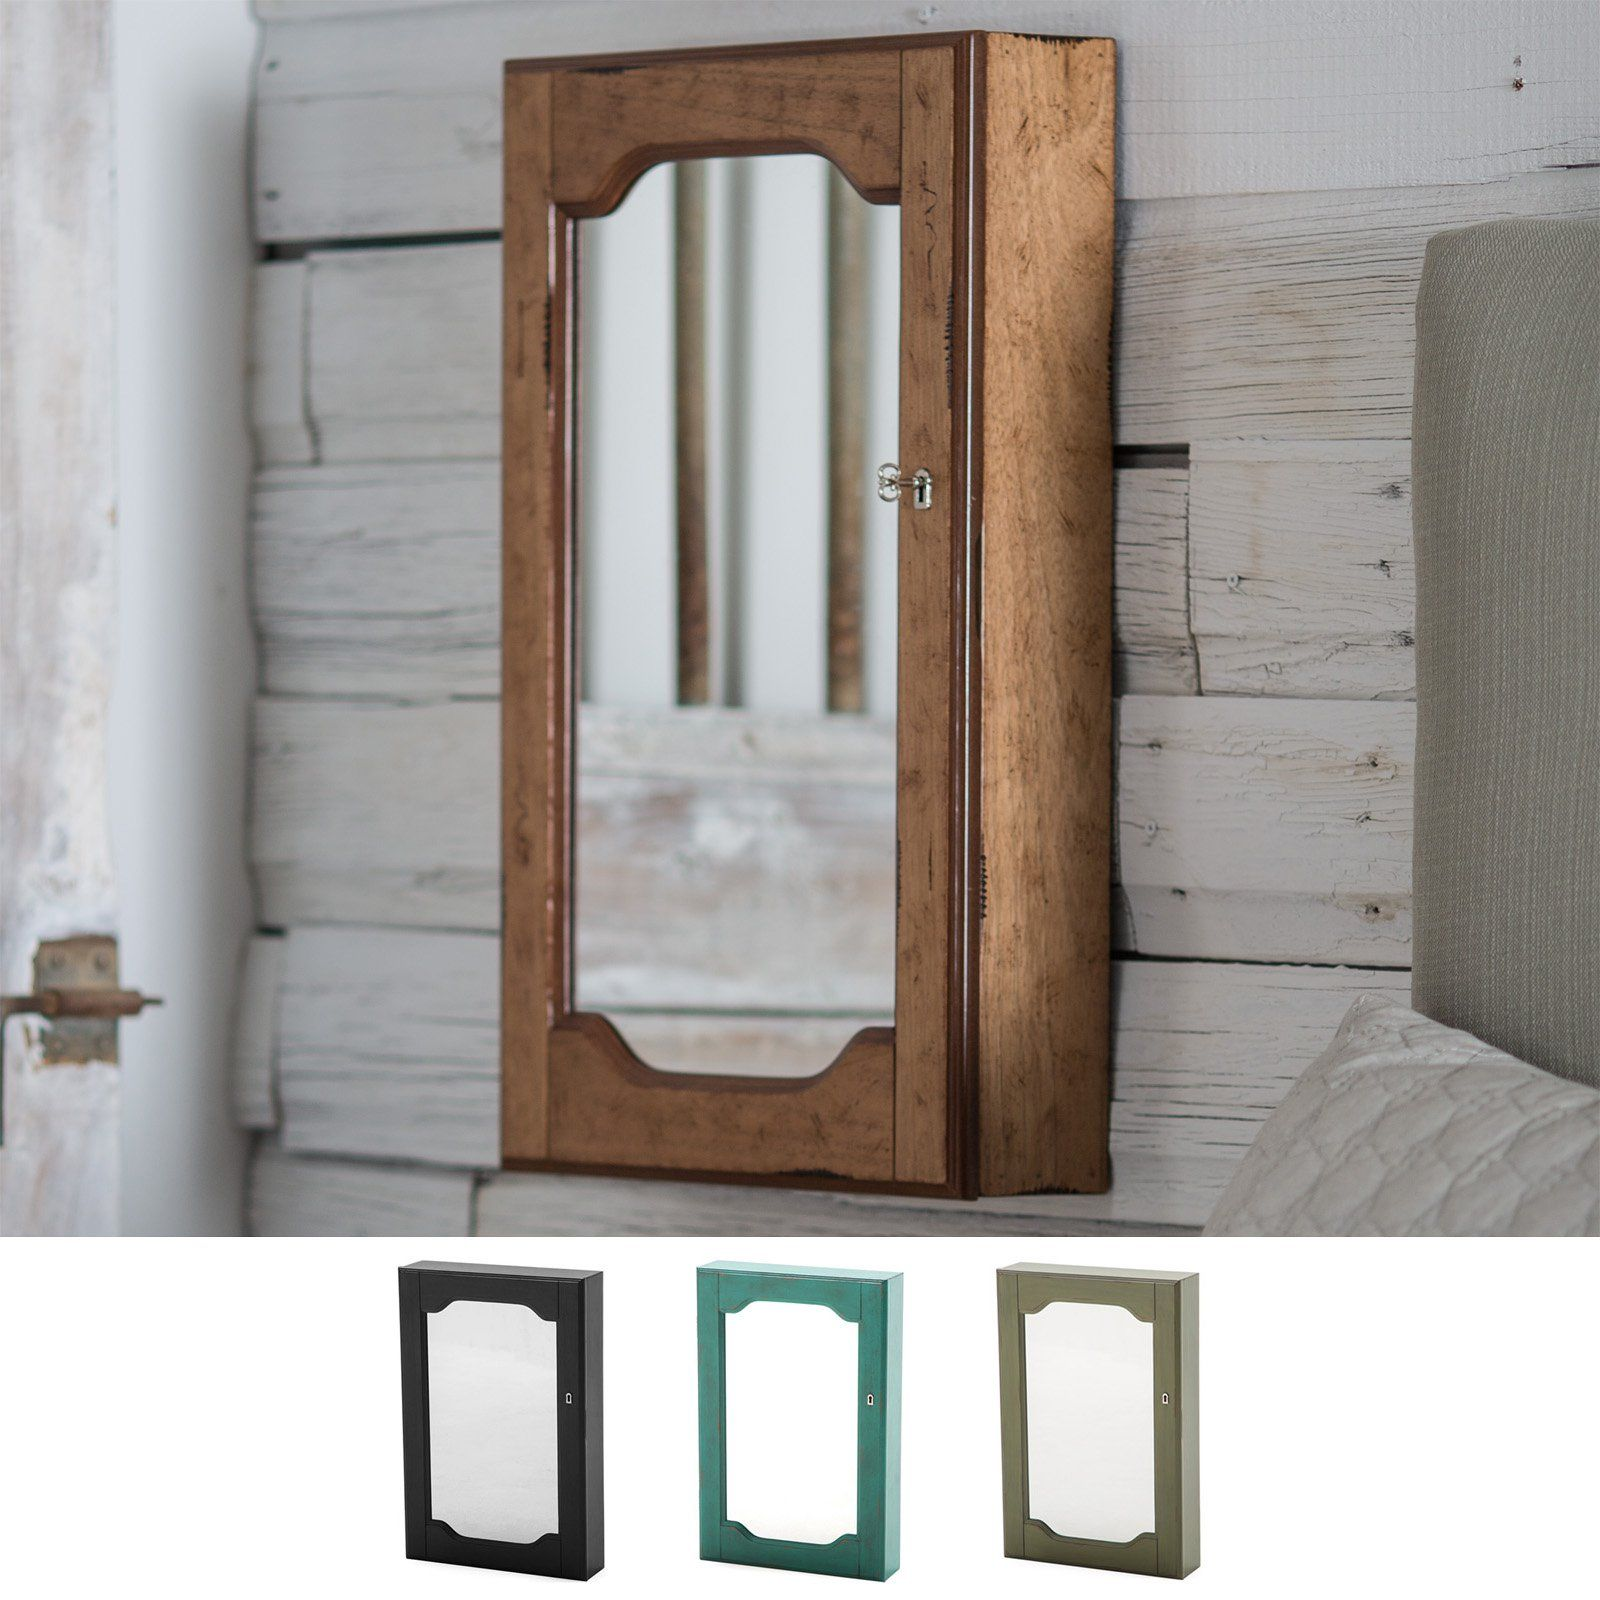 Distressed Wall Mount Mirrored Locking Jewelry Armoire Wall